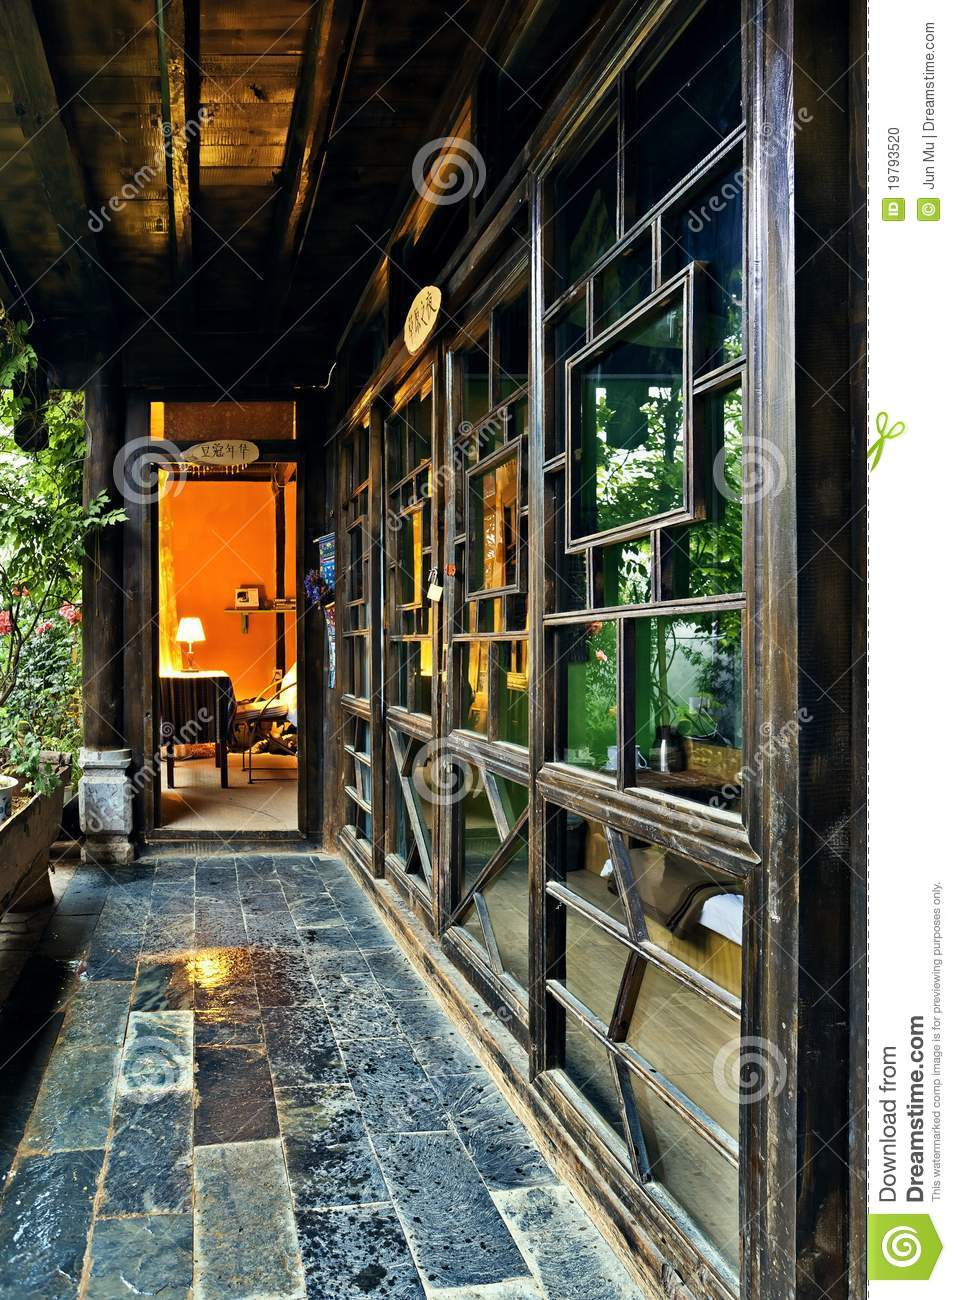 Ancient chinese home interior - Ancient Chinese House Interior Stock Photo